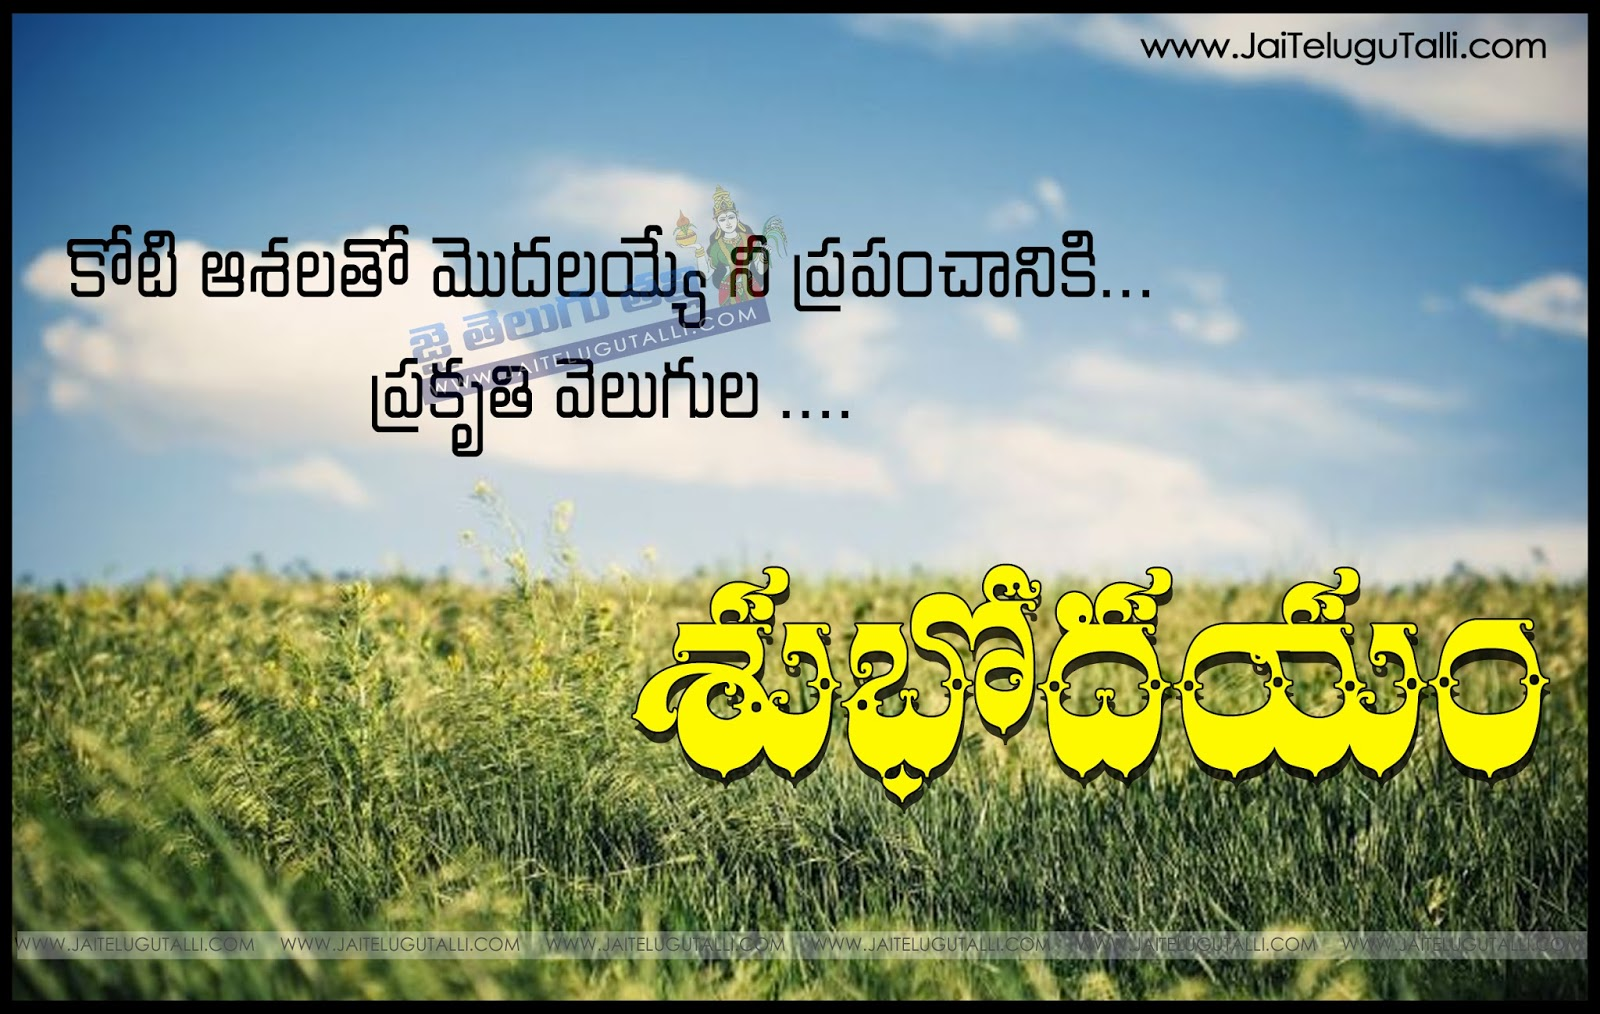 Telugu Good Morning Quotes With Images Wwwjaitelugutallicom